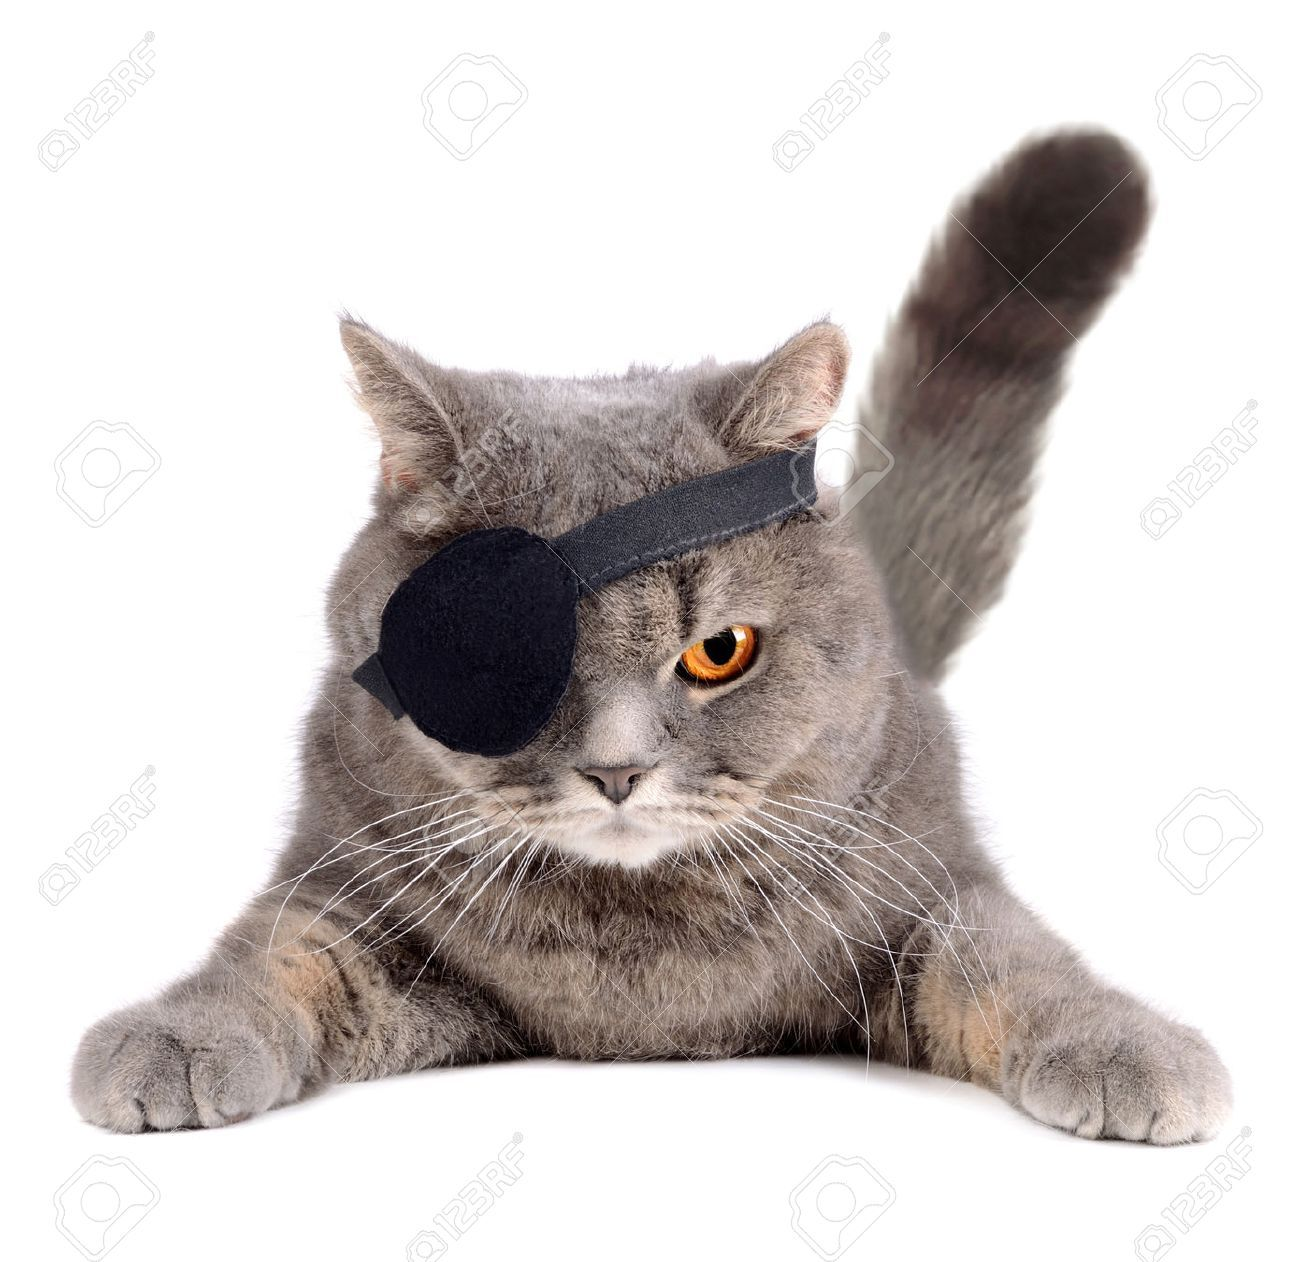 British Cat In Caribbean Pirate Costume With Eye Patch Grumpy Cat Images Cats Funny Cat Pictures